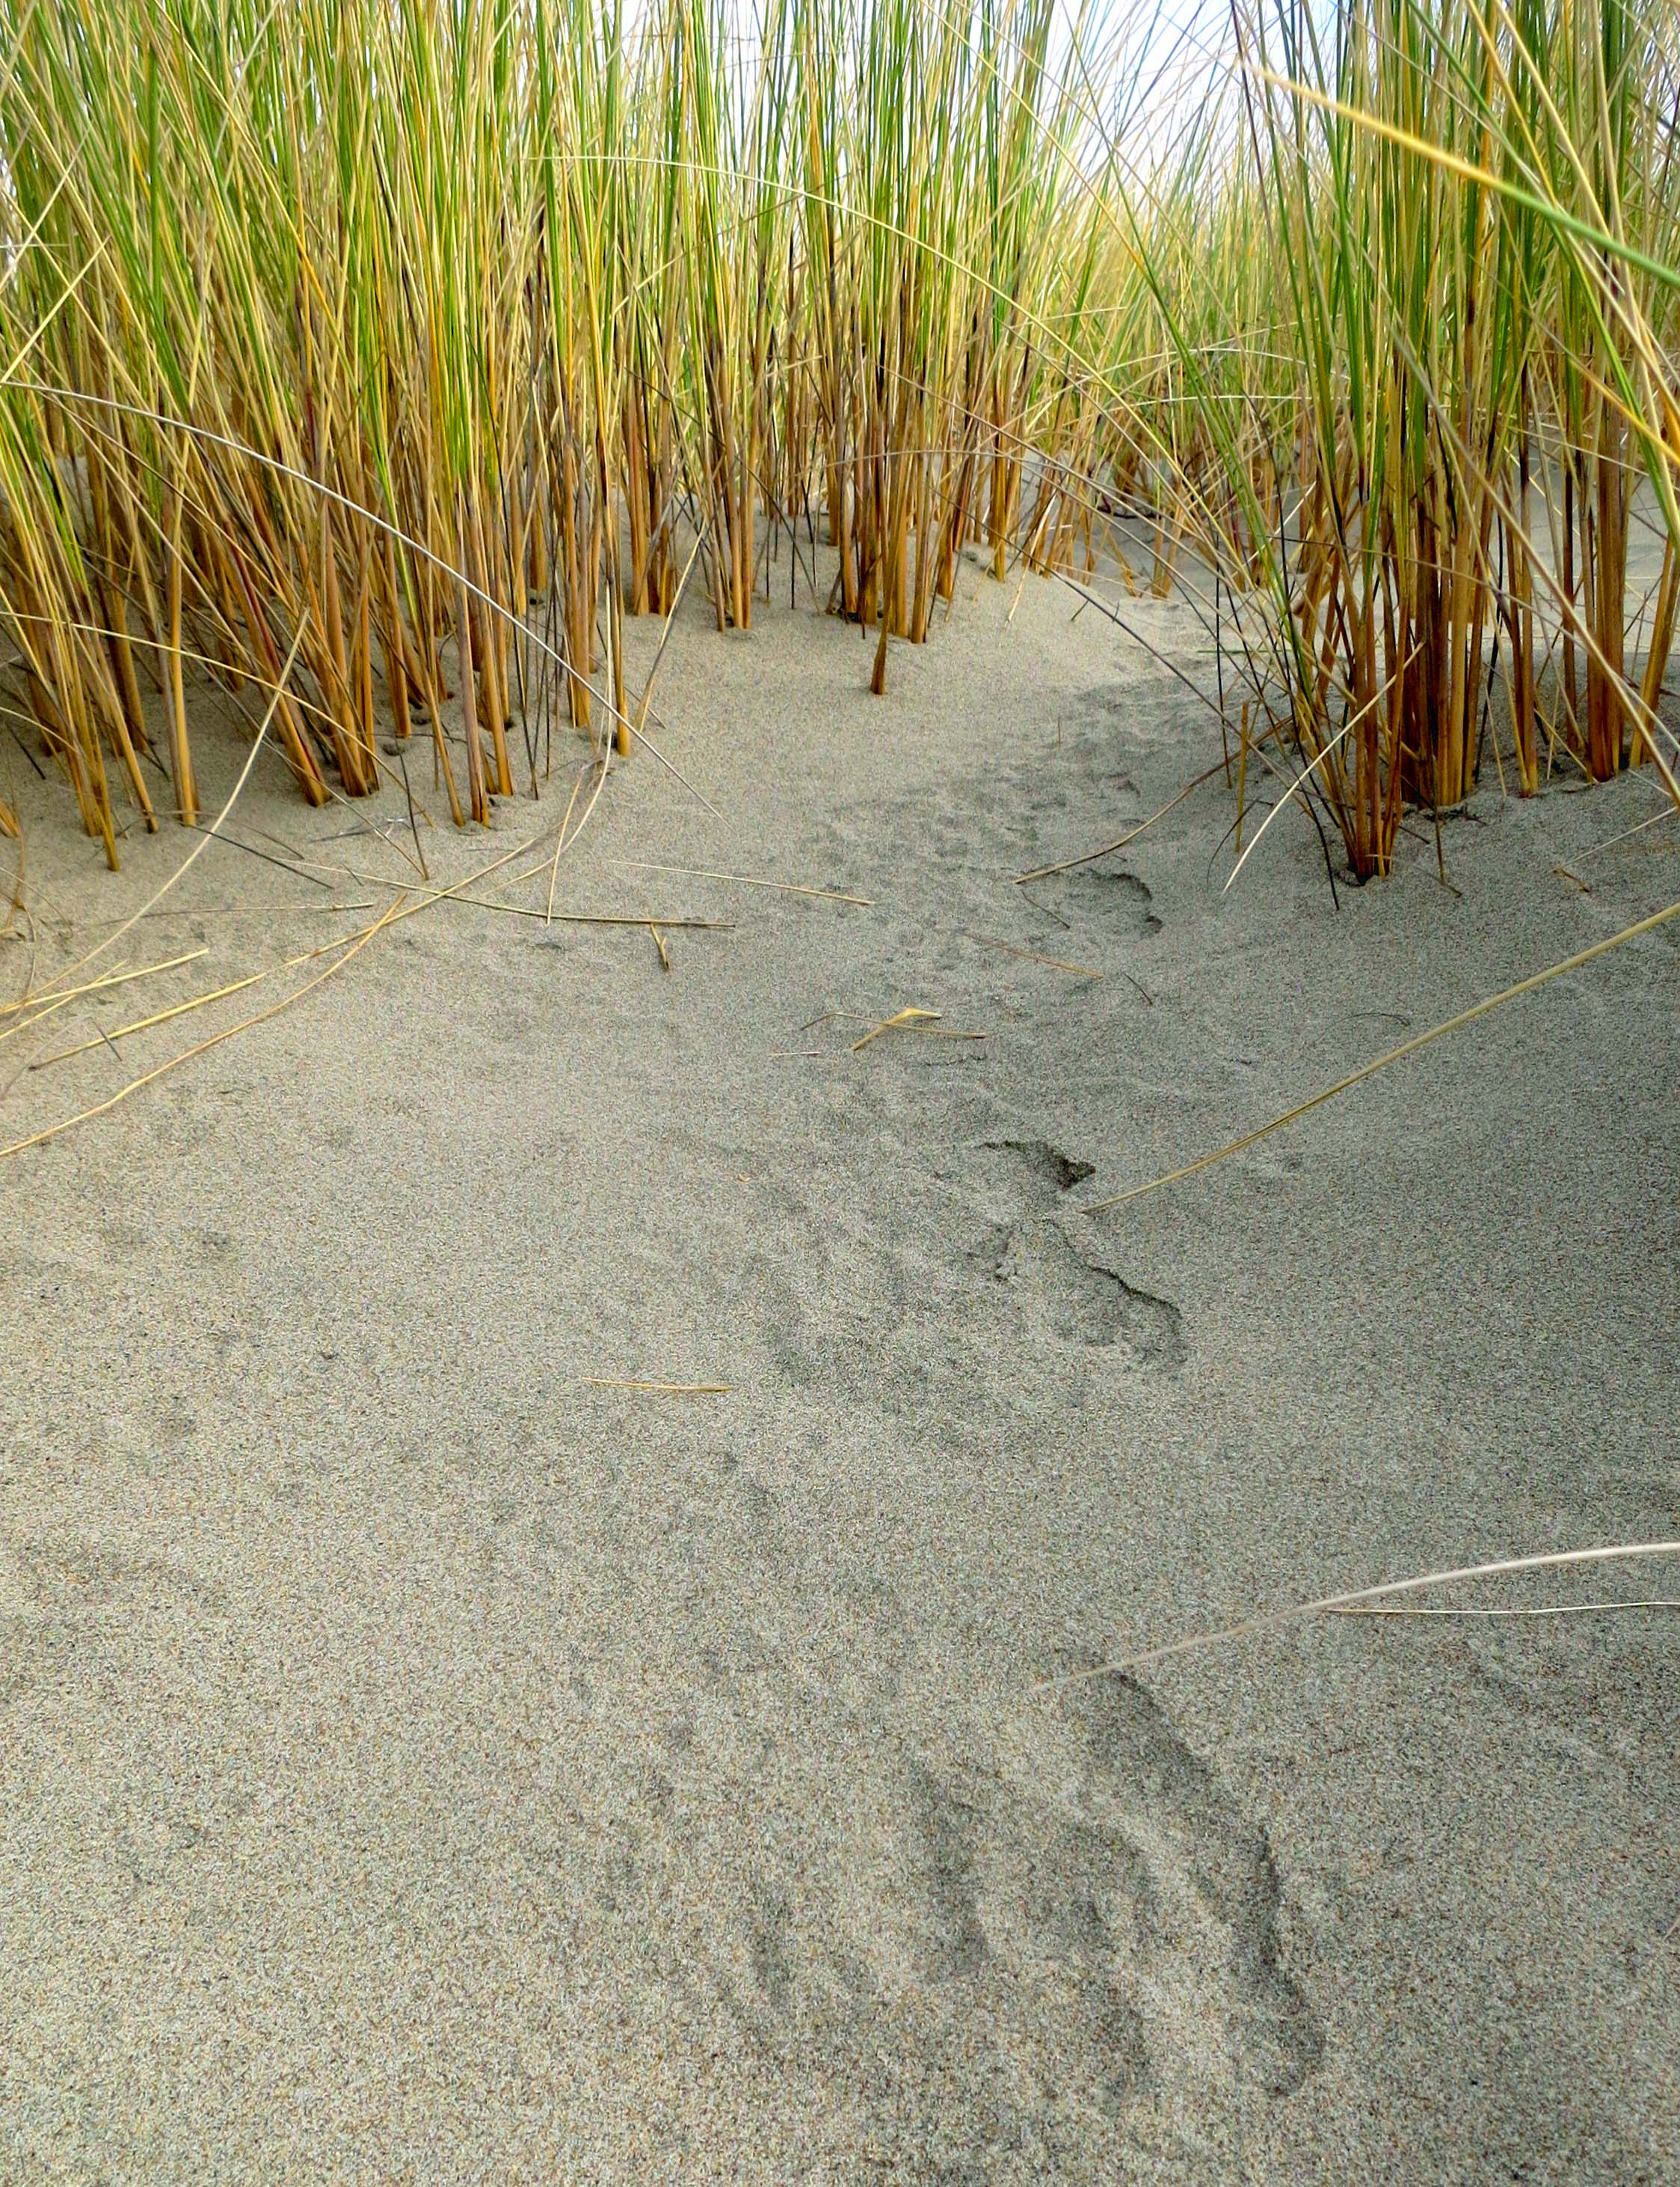 These tracks represent a virtual freeway into the grass on the spit.